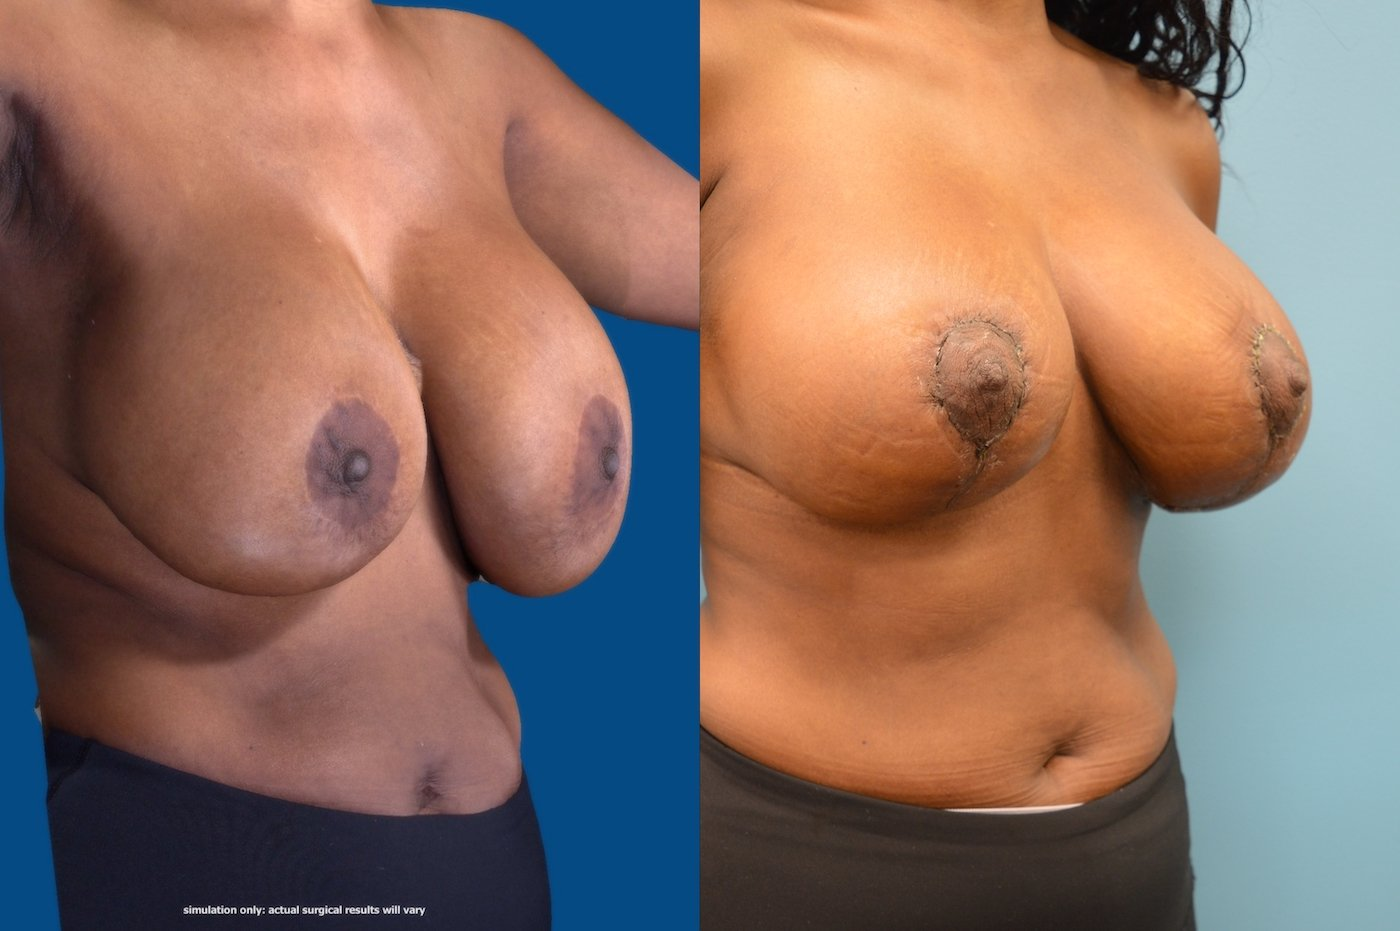 54 year-old 10 weeks after explantation ruptured implants and breast auto augmentation right oblique view